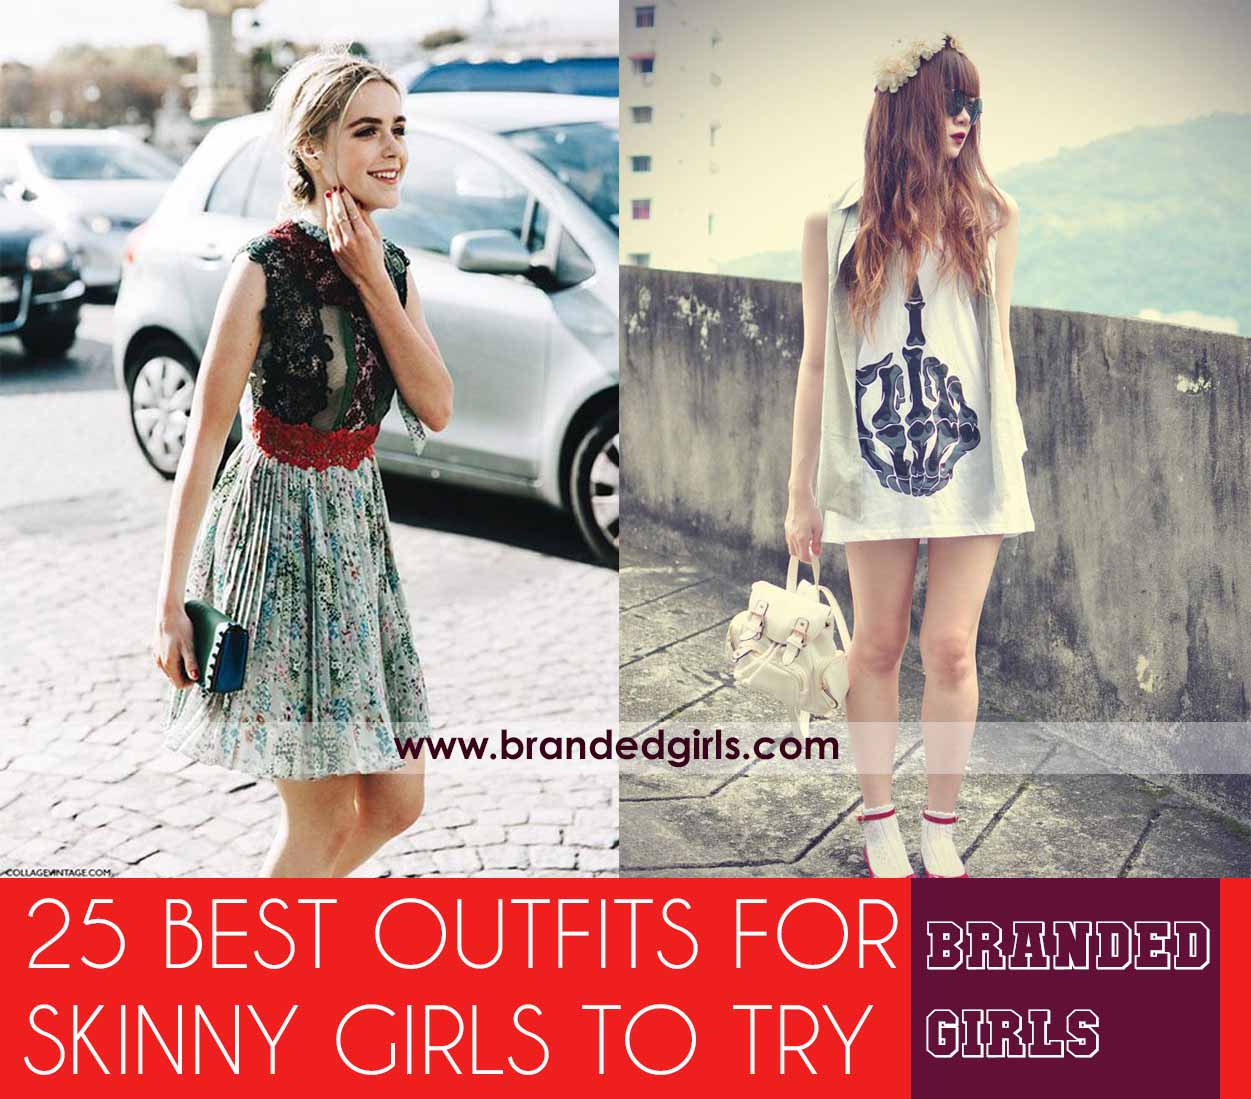 polyvore-sample-18 25 Cute Outfits for Skinny Girls-Ideas What to Wear being Skinny